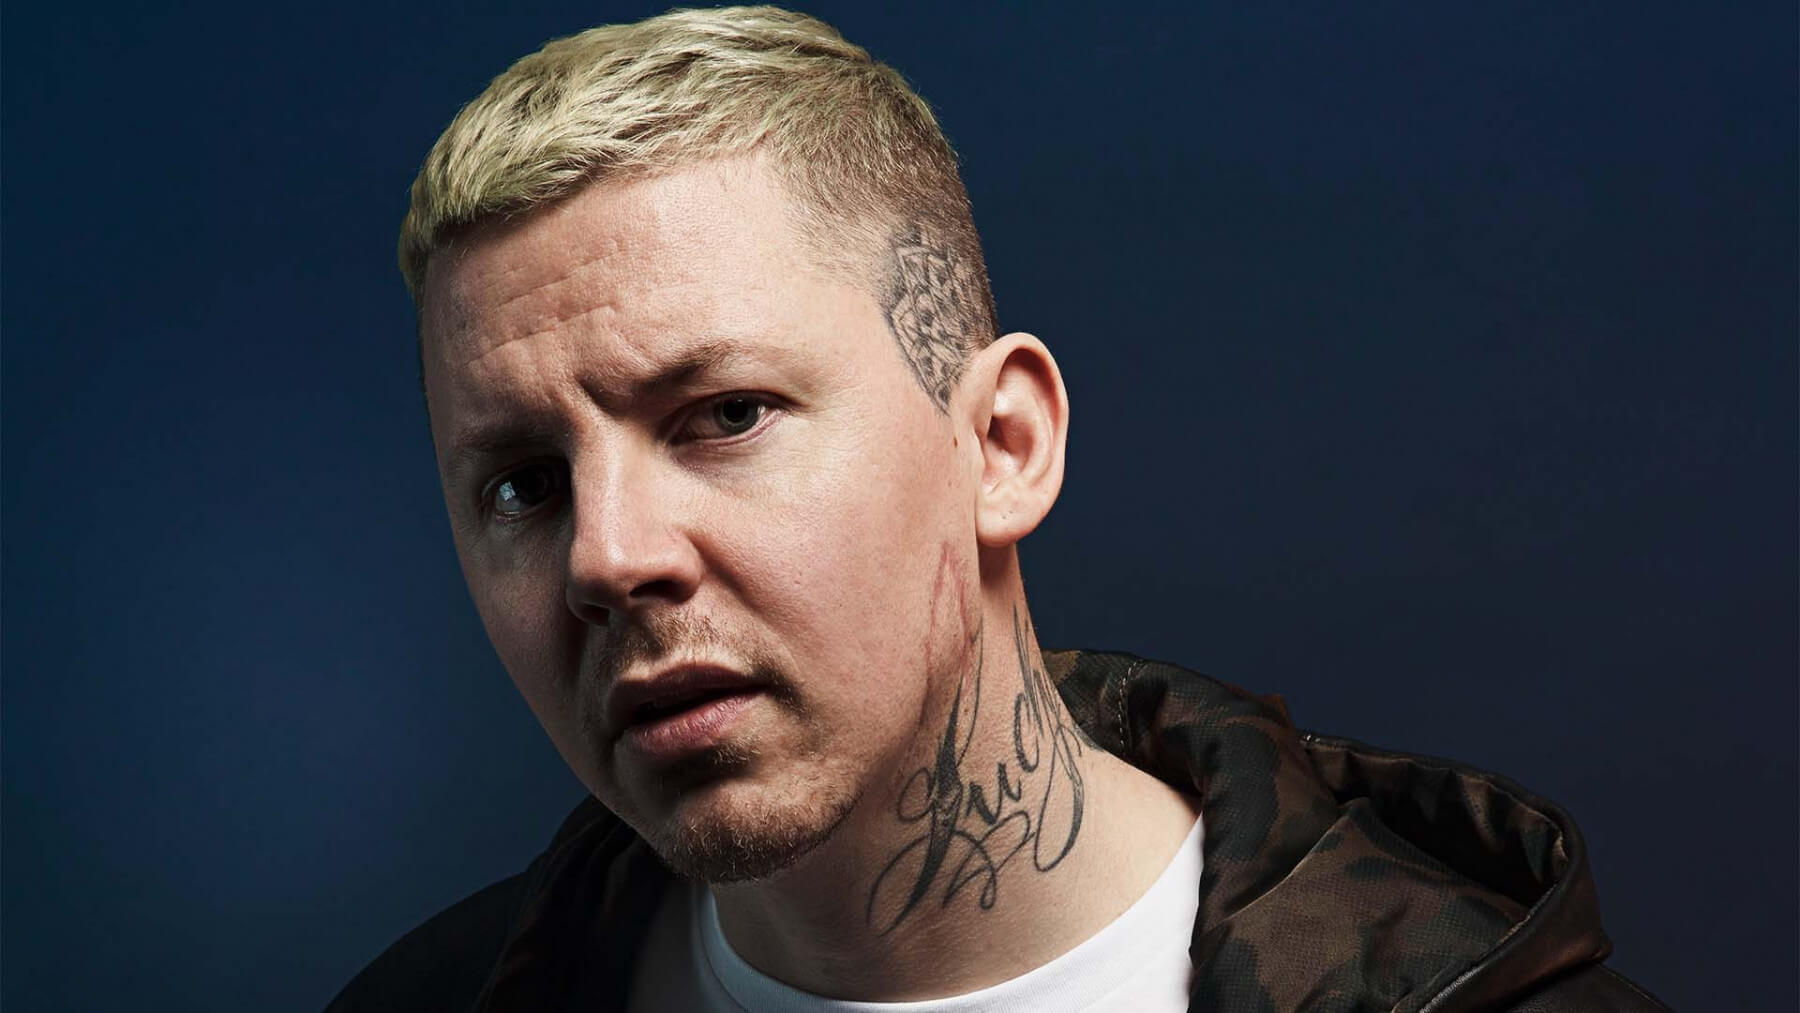 Professor Green Net Worth (April 2021)